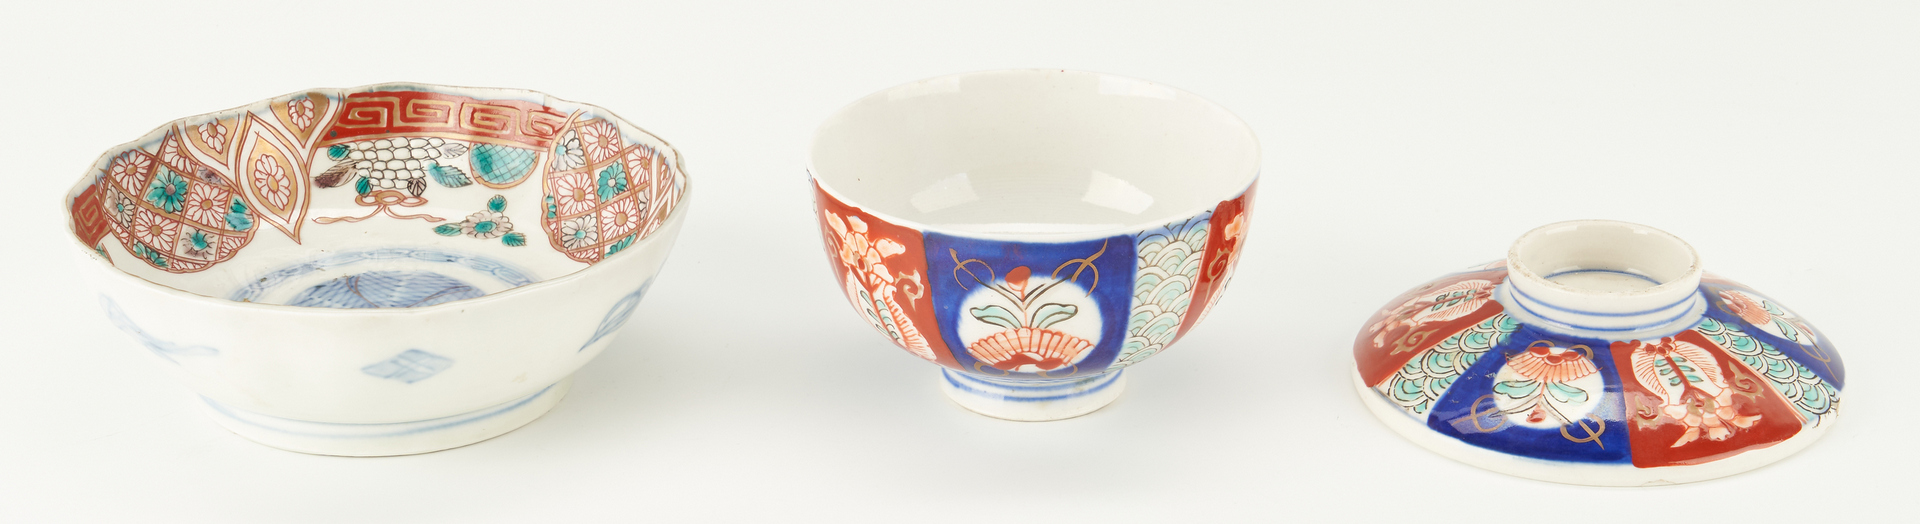 Lot 1092: 14 Japanese Imari or Arita Items, incl. Charger